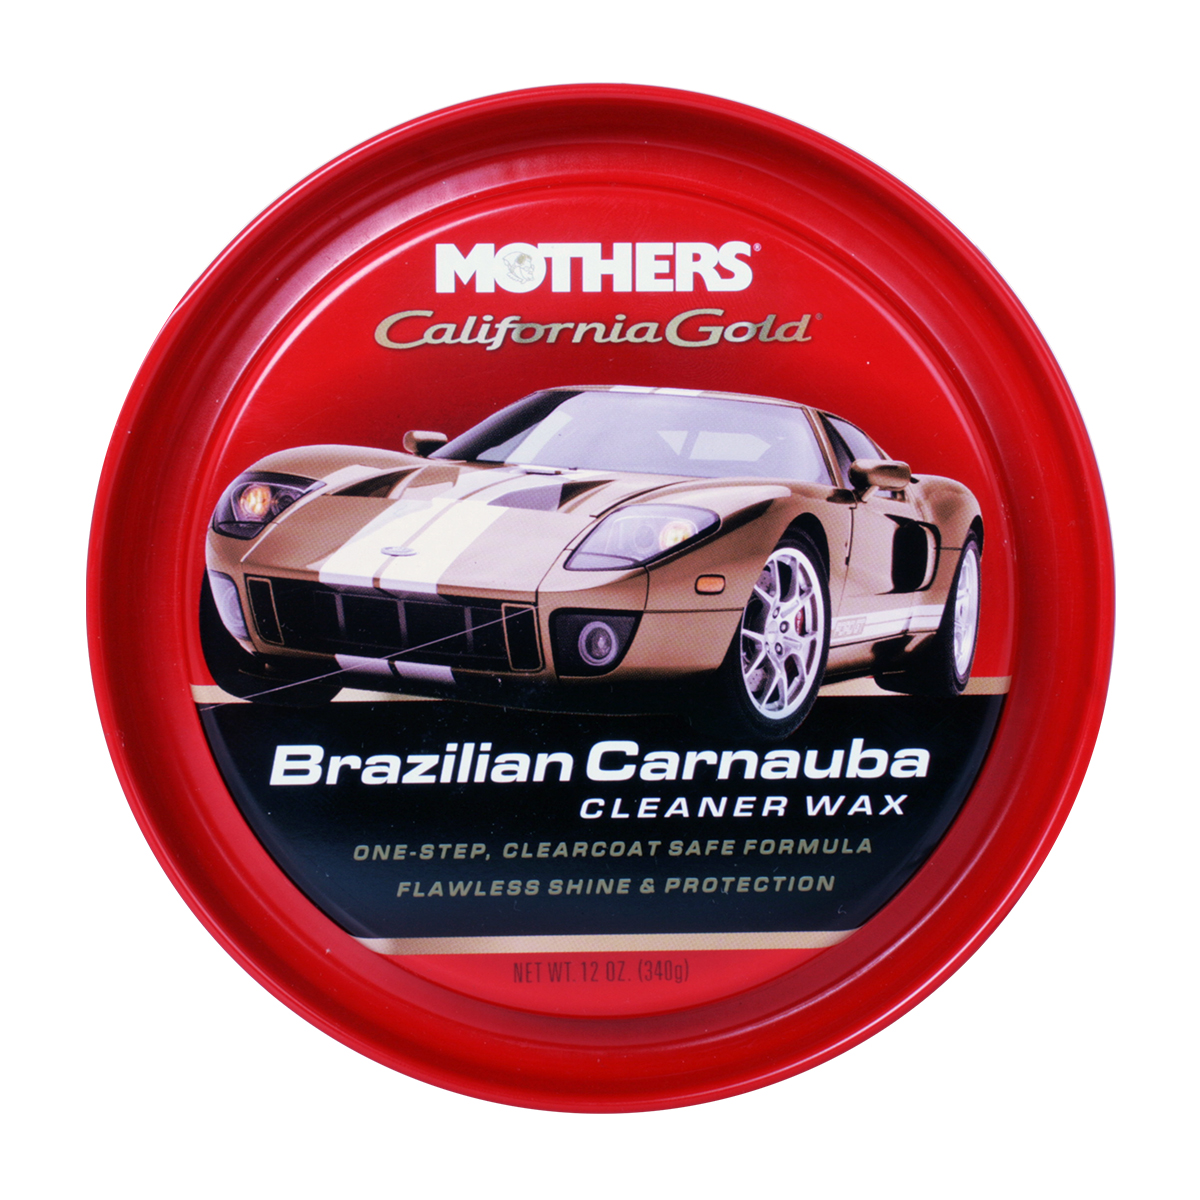 98275 Mothers California Gold Brazilian Carnauba Cleaner Wax